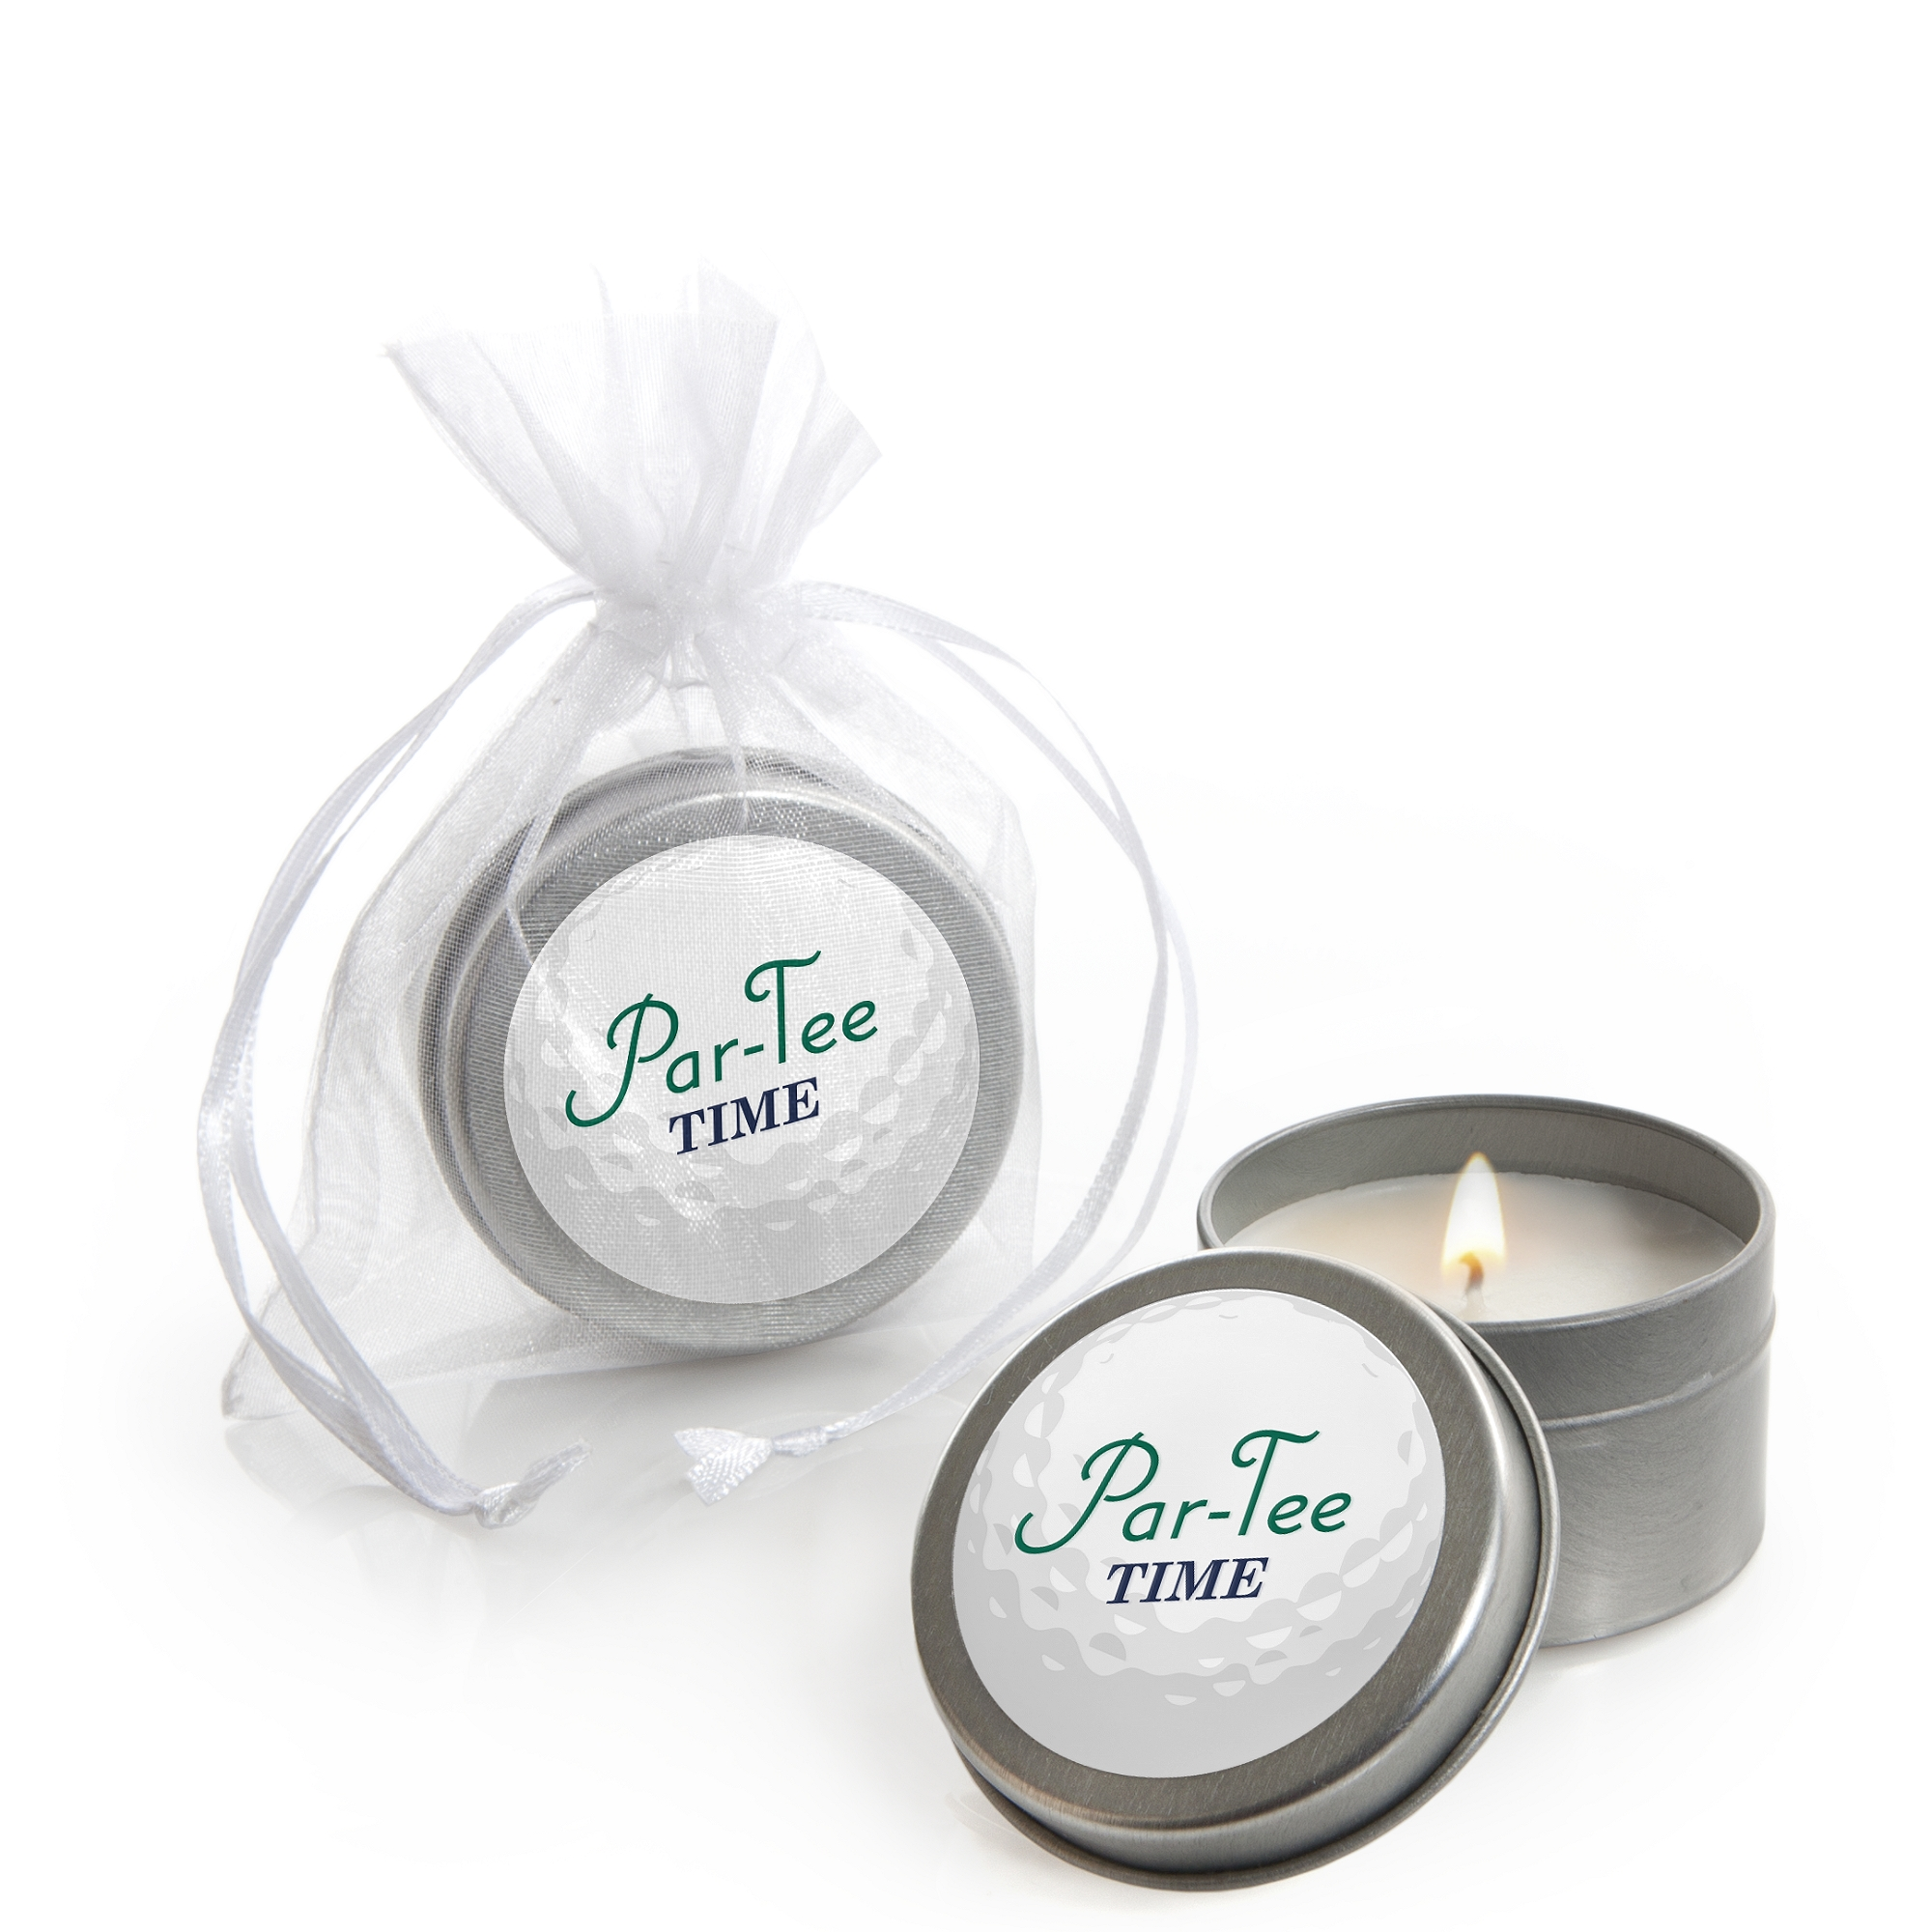 Par-Tee Time - Golf - Candle Tin Birthday or Retirement Party Favors (Set of 12)